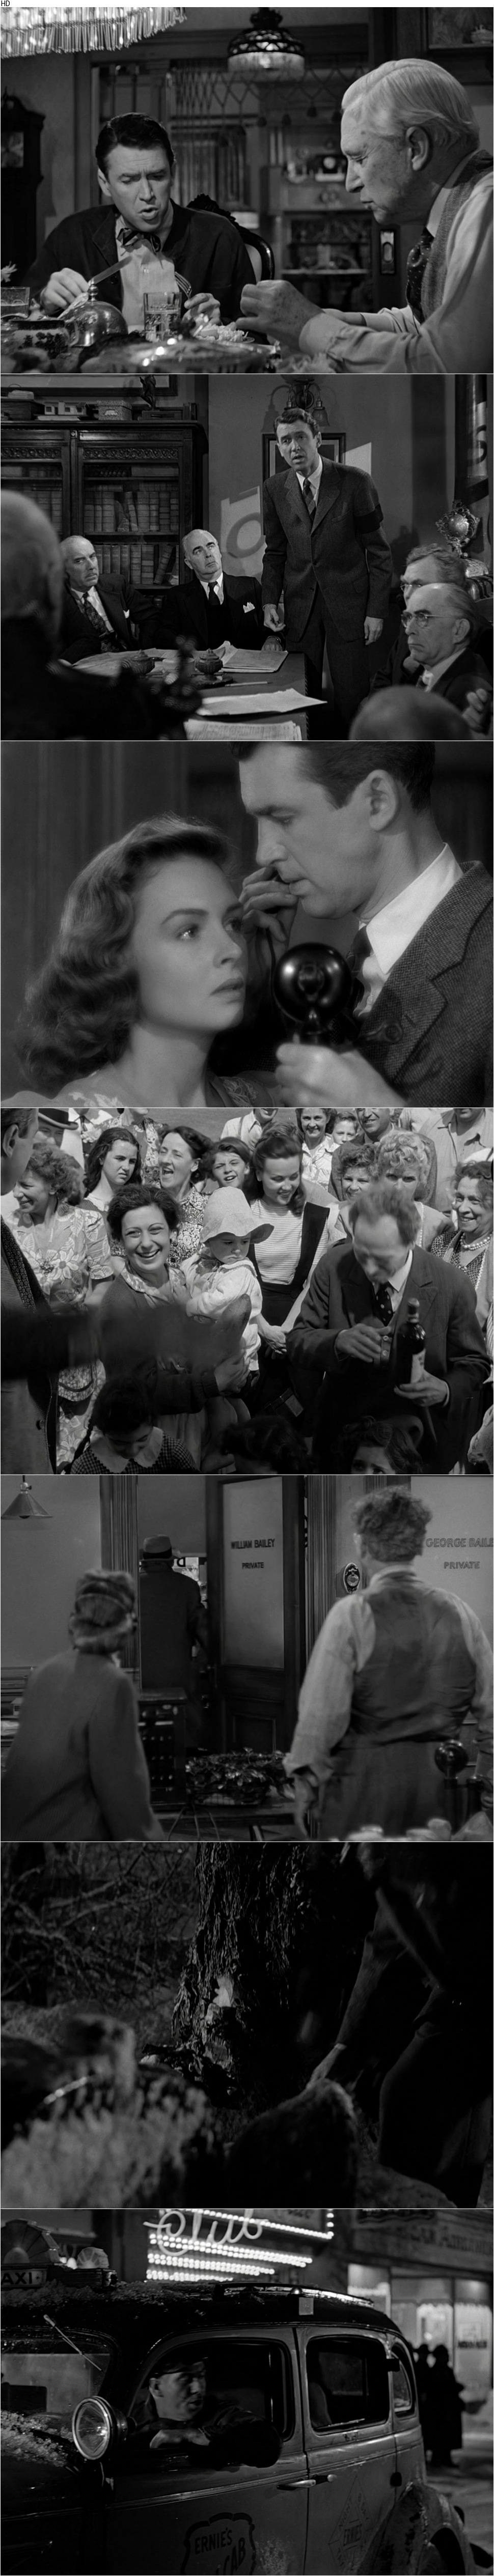 It's a Wonderful Life (1946) + Extras